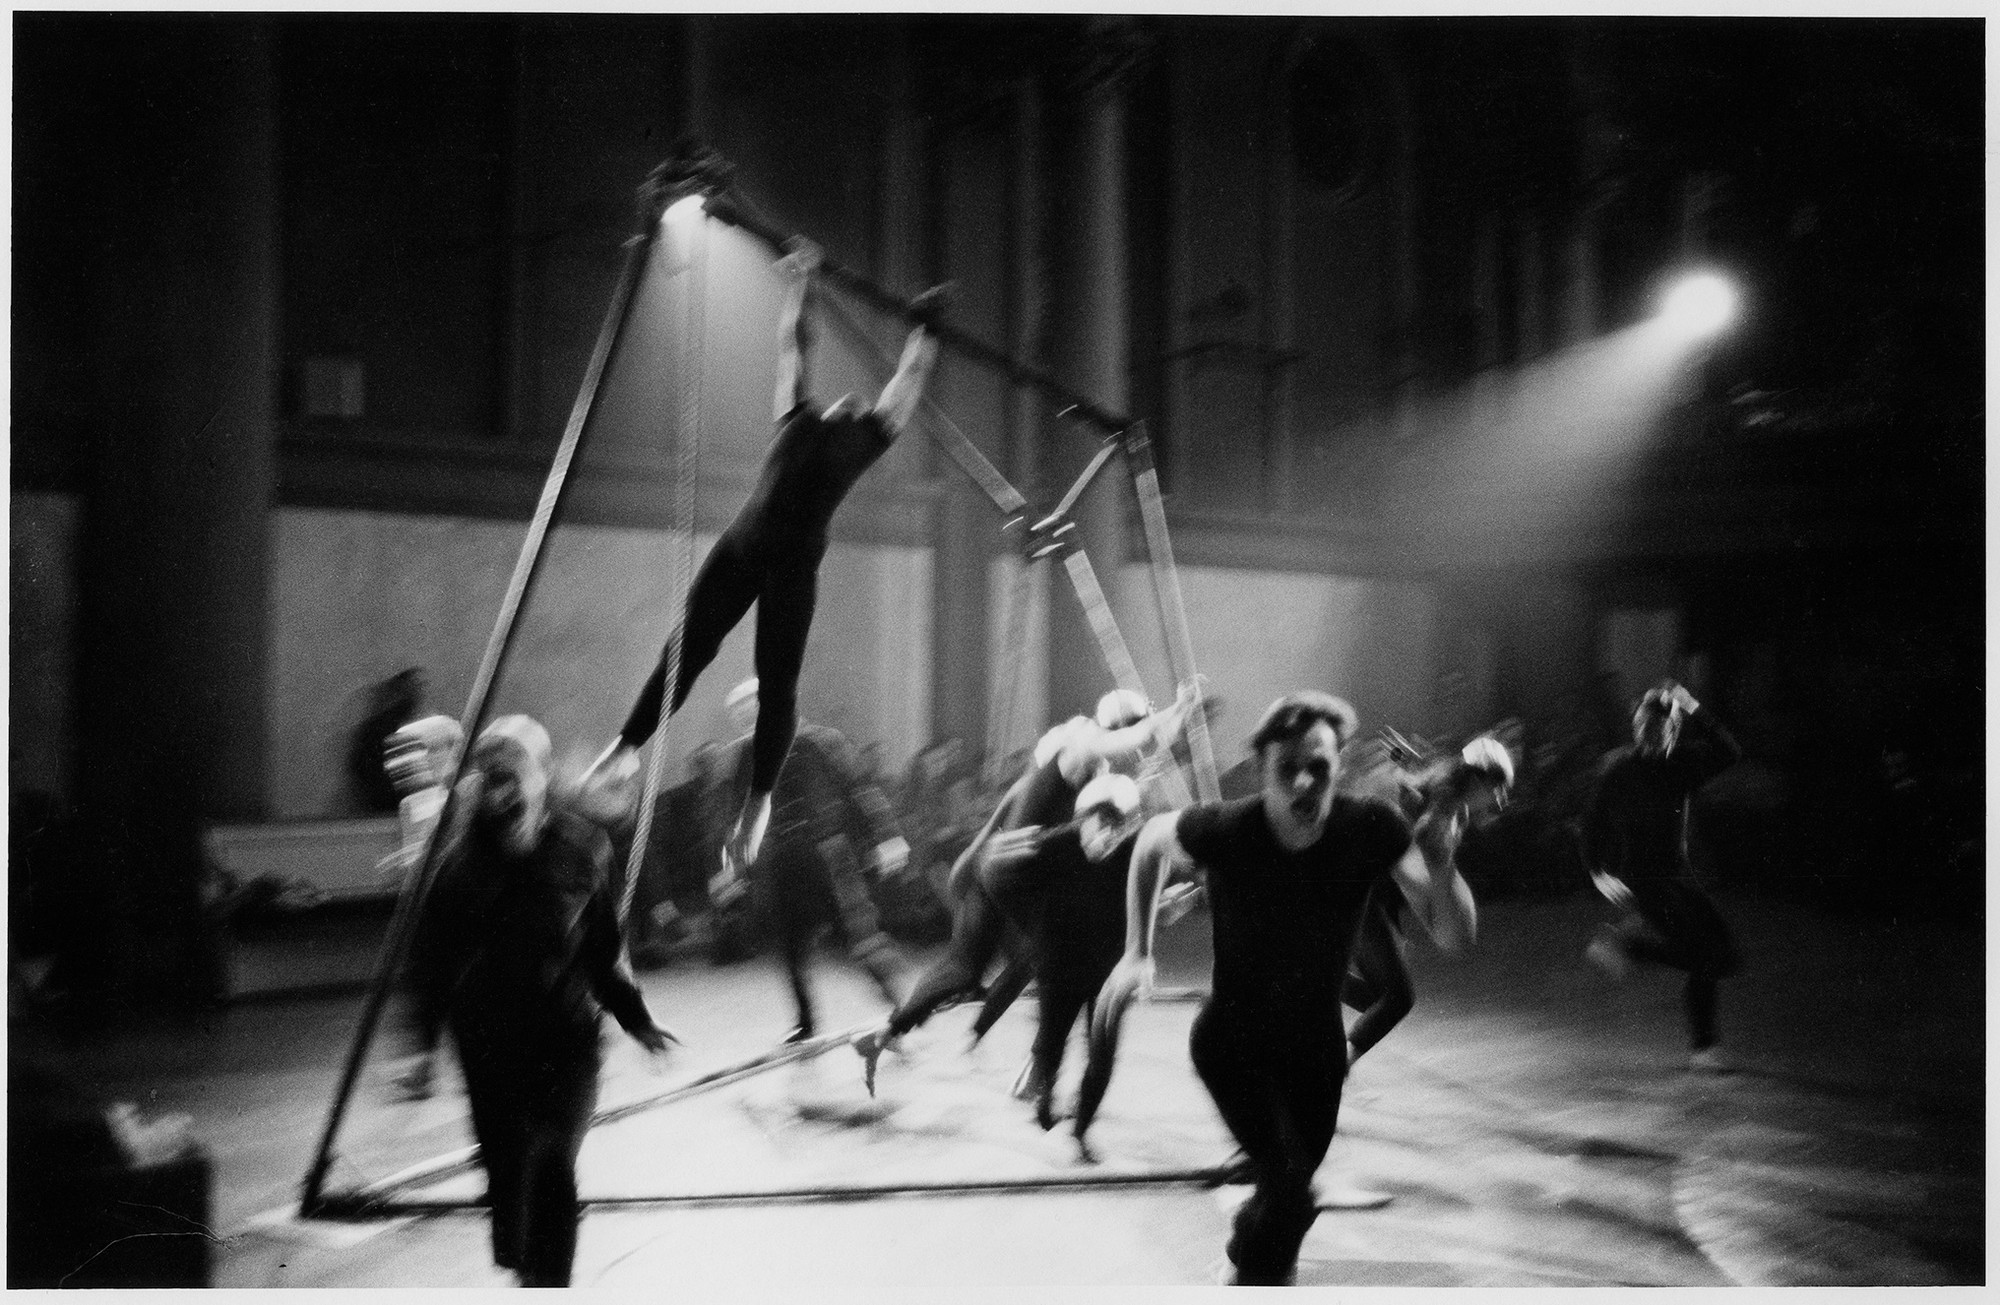 Peter Moore's photograph of unidentified performers in Joan Baker's _Ritual_ (detail), 1963. Performed in _Concert of Dance #13_, Judson Memorial Church, November 20, 1963. © Barbara Moore/Licensed by VAGA, New York, NY. Courtesy Paula Cooper Gallery, New York